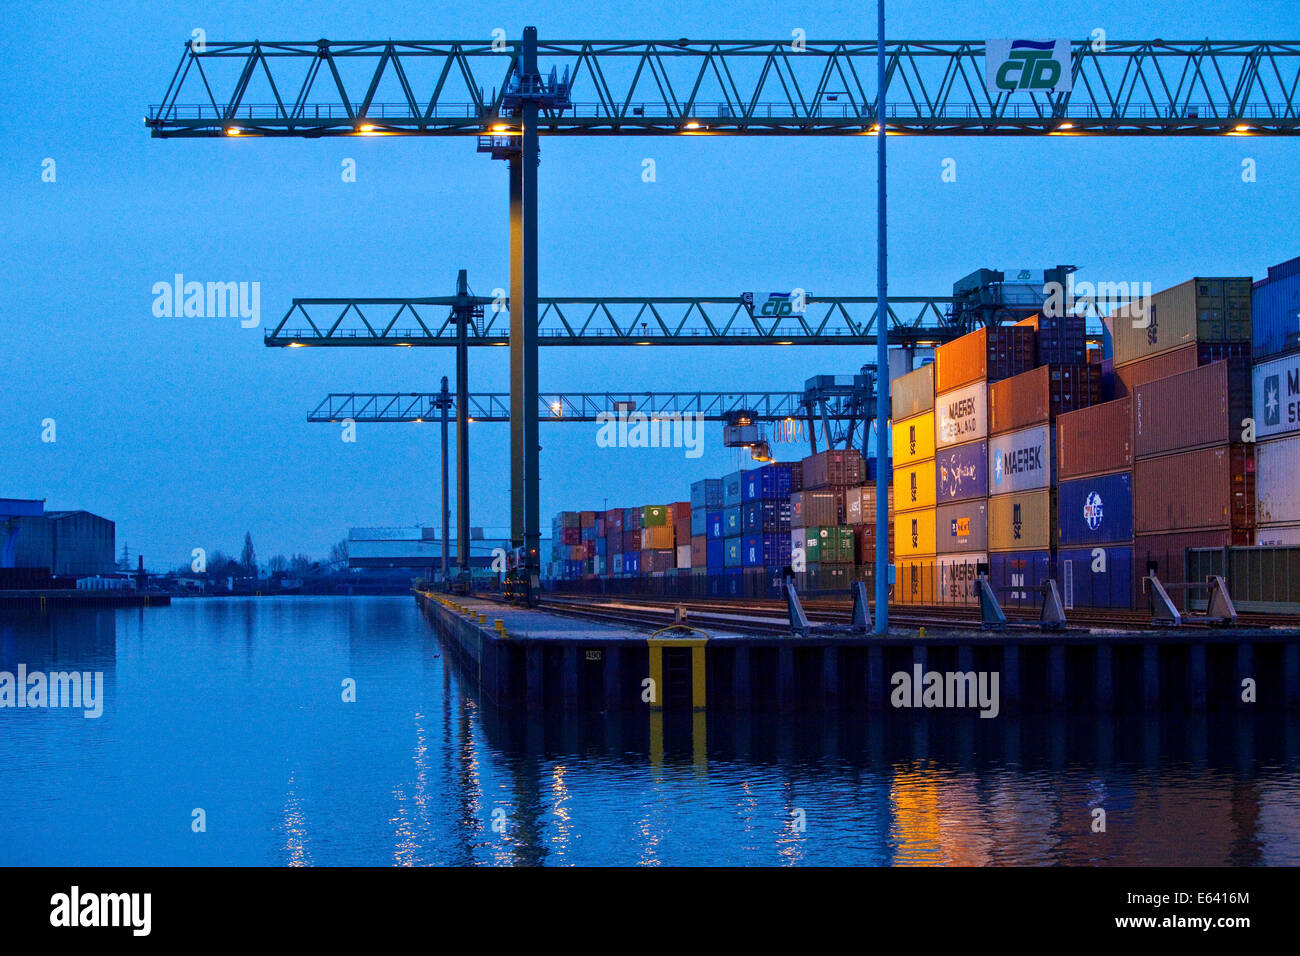 Container Terminal Dortmund or CTD, in the harbor, Dortmund, Ruhr district, North Rhine-Westphalia, Germany Stock Photo